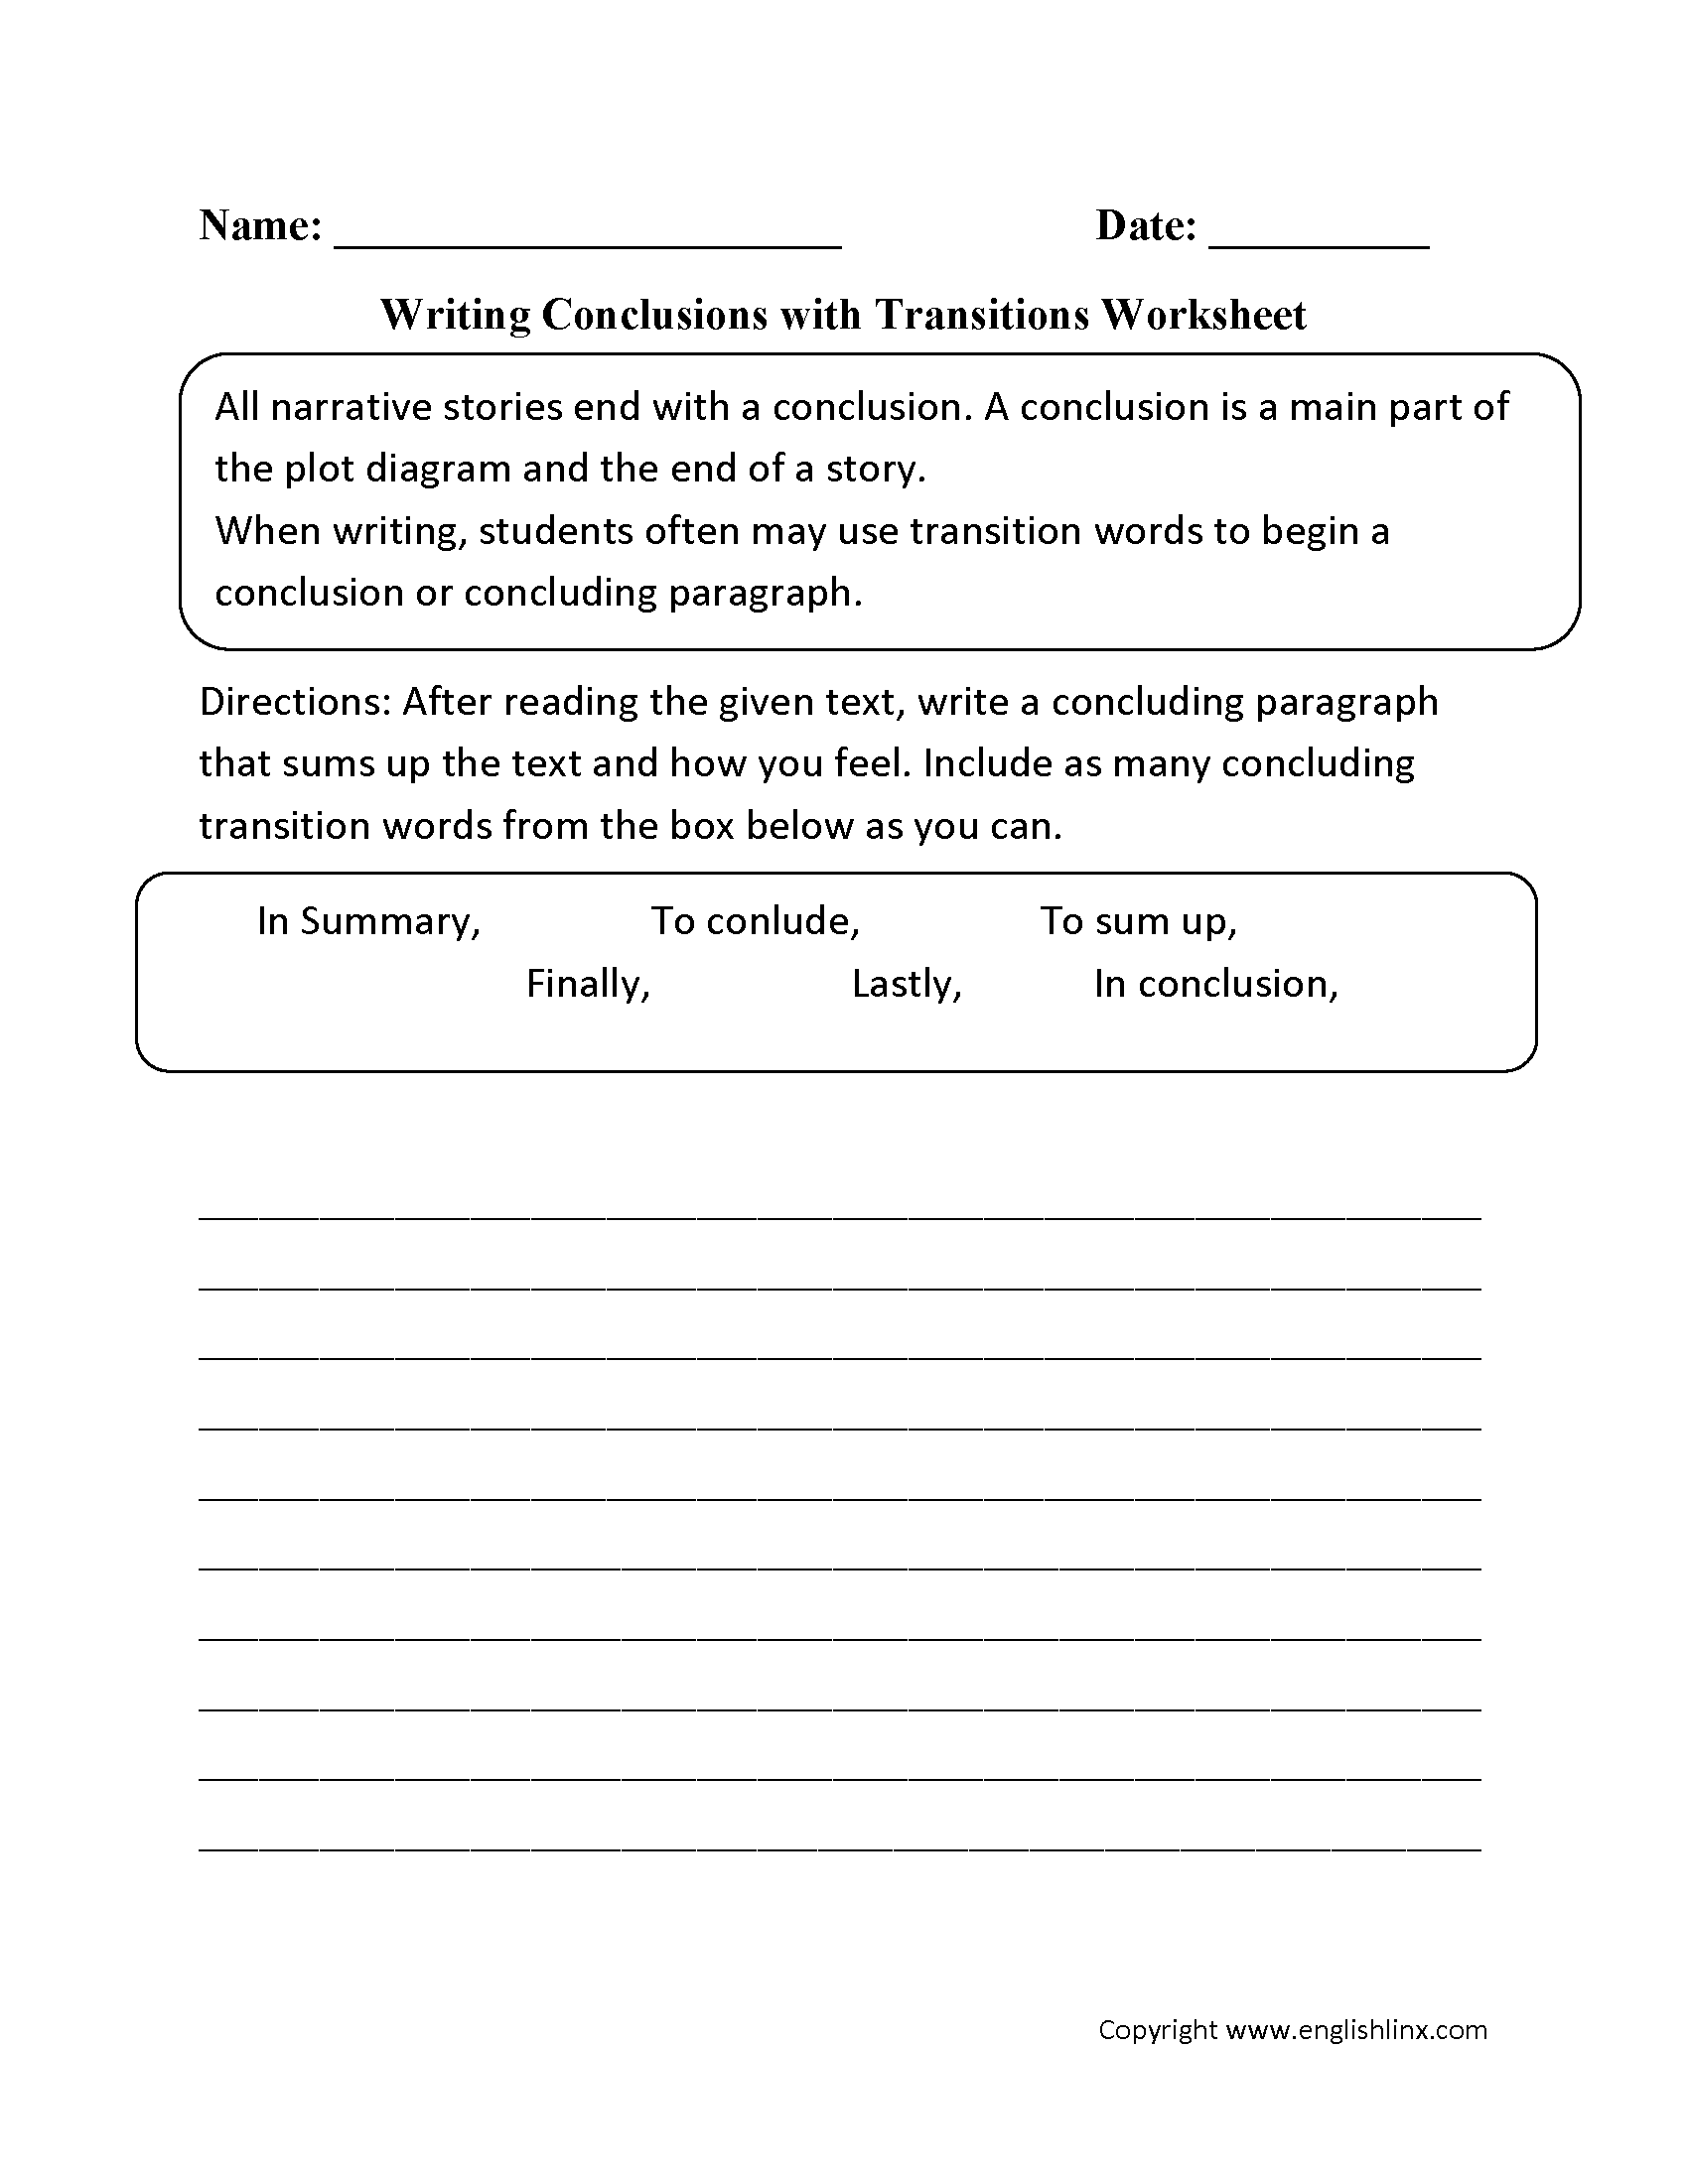 Words To Use For Conclusion Transition Words And Phrases